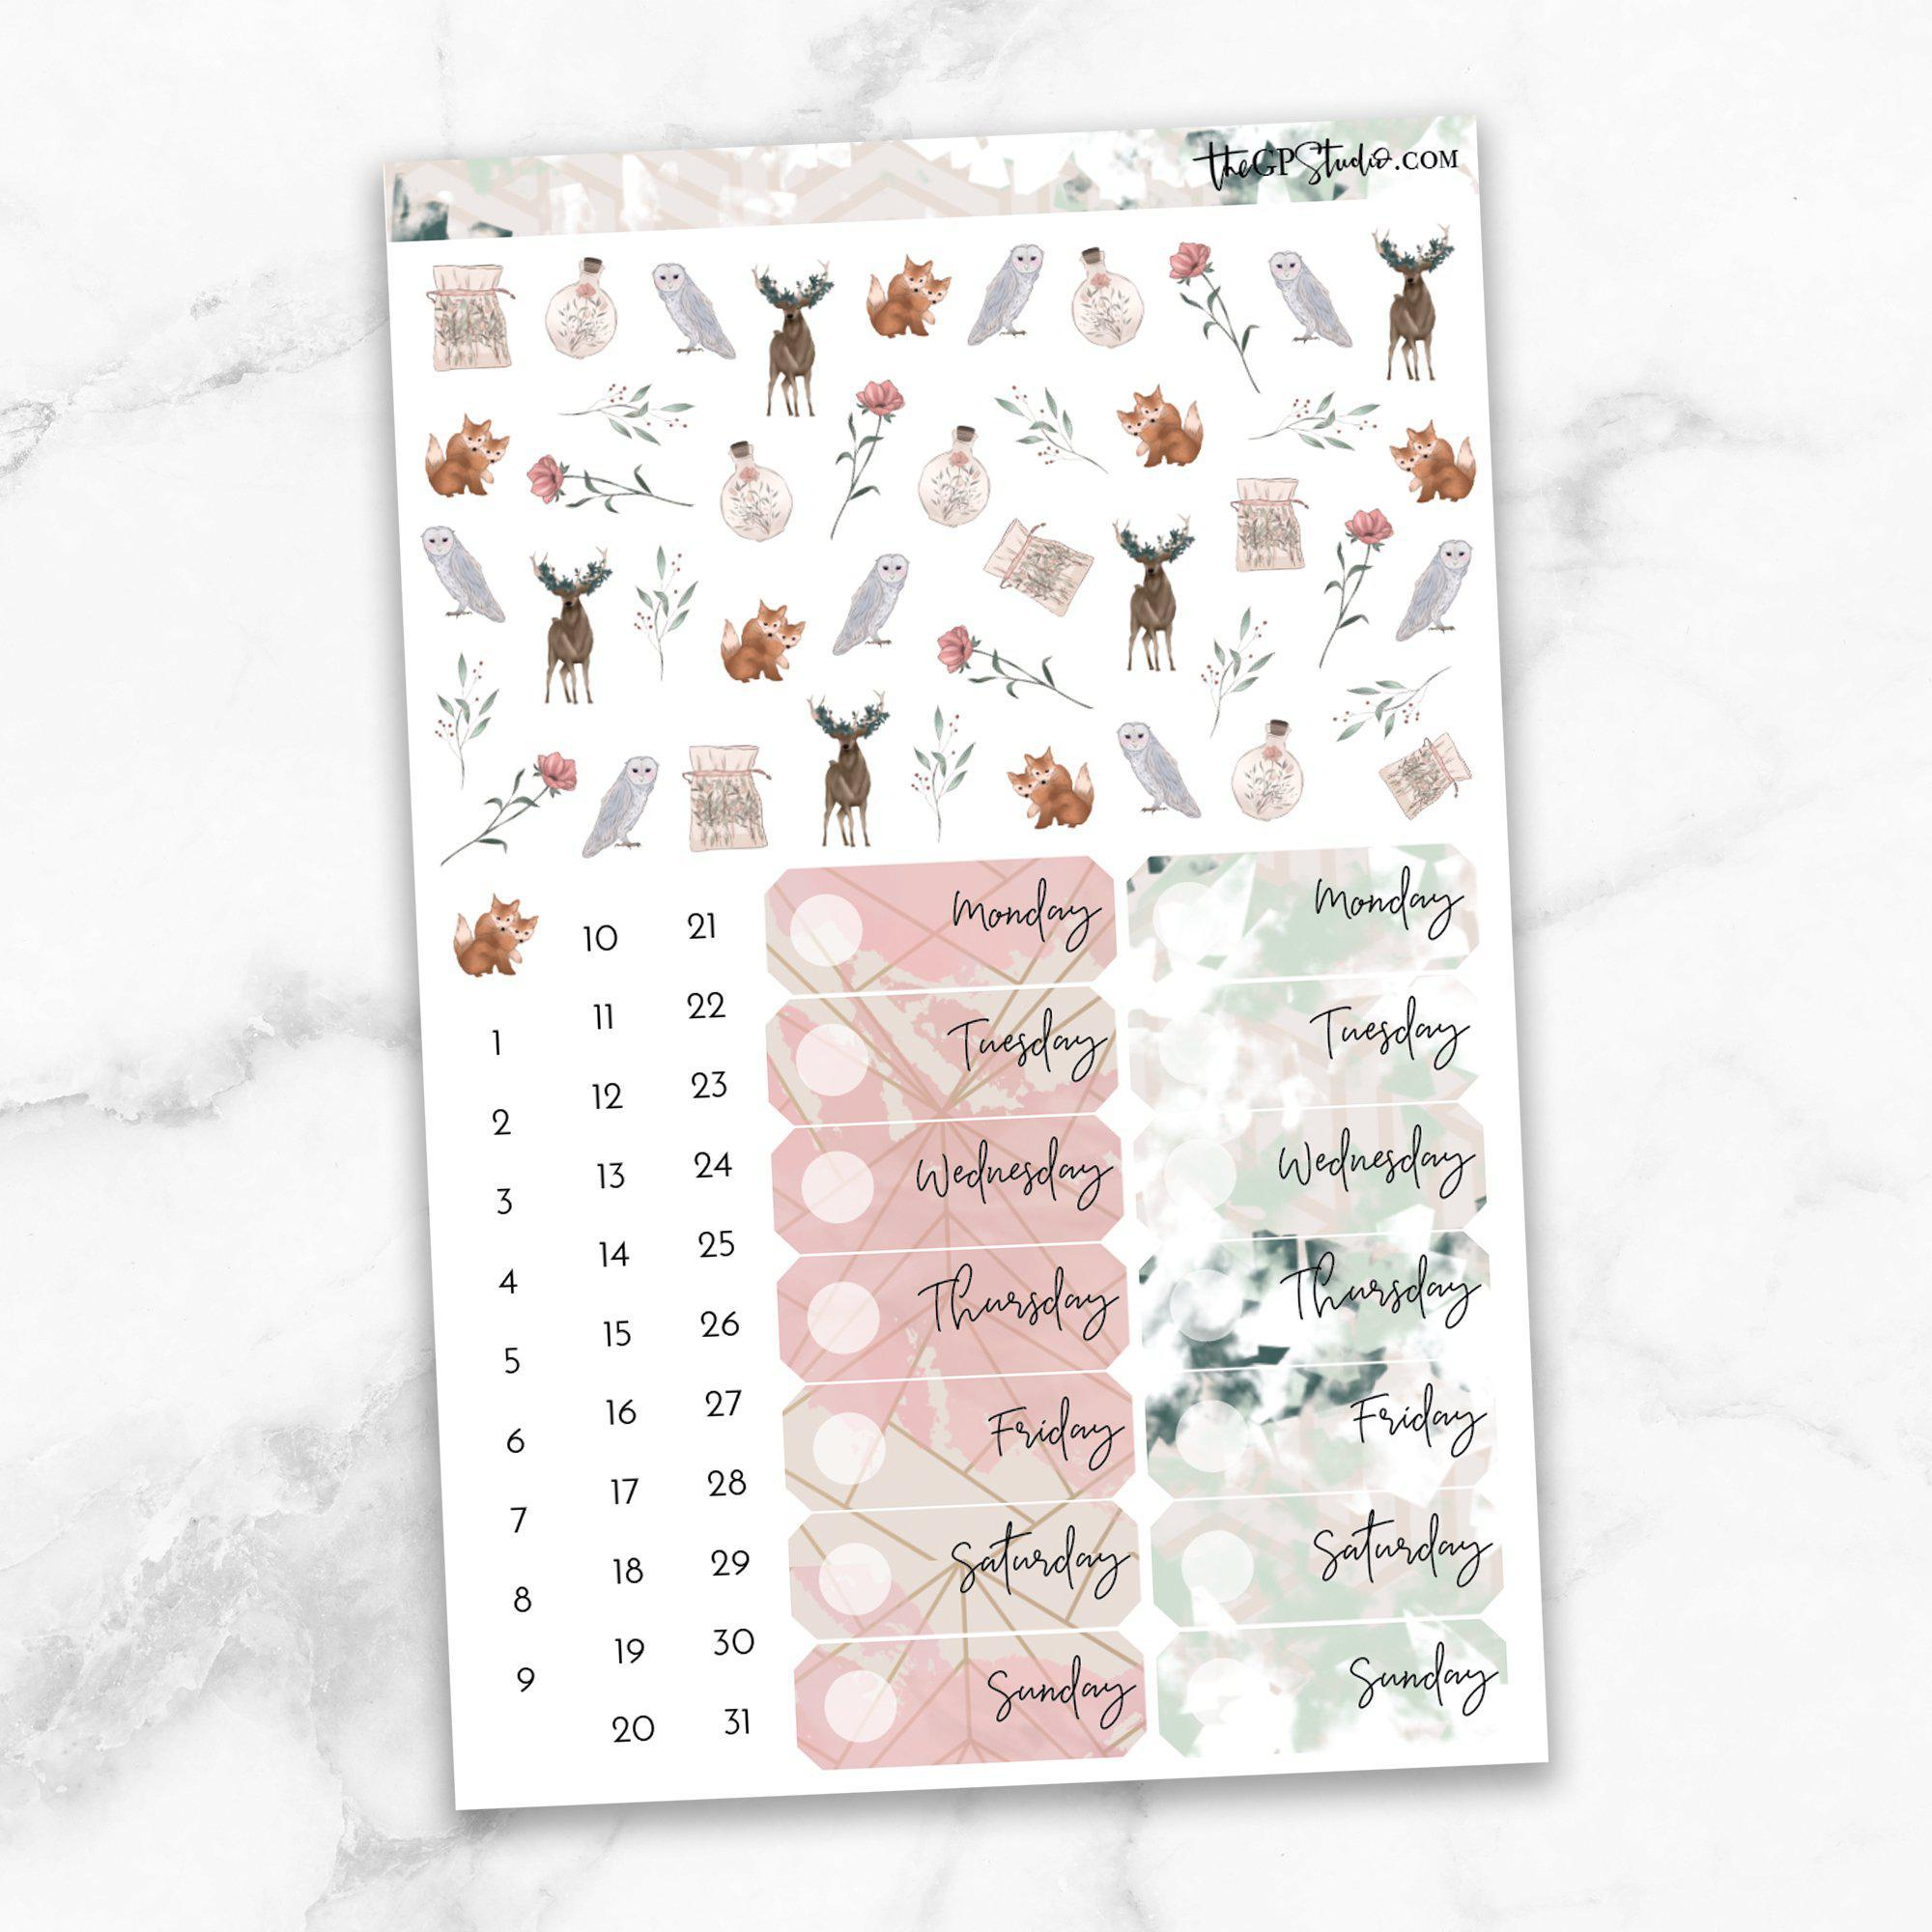 MAGIC POTION Deco & Date Cover Stickers-The GP Studio